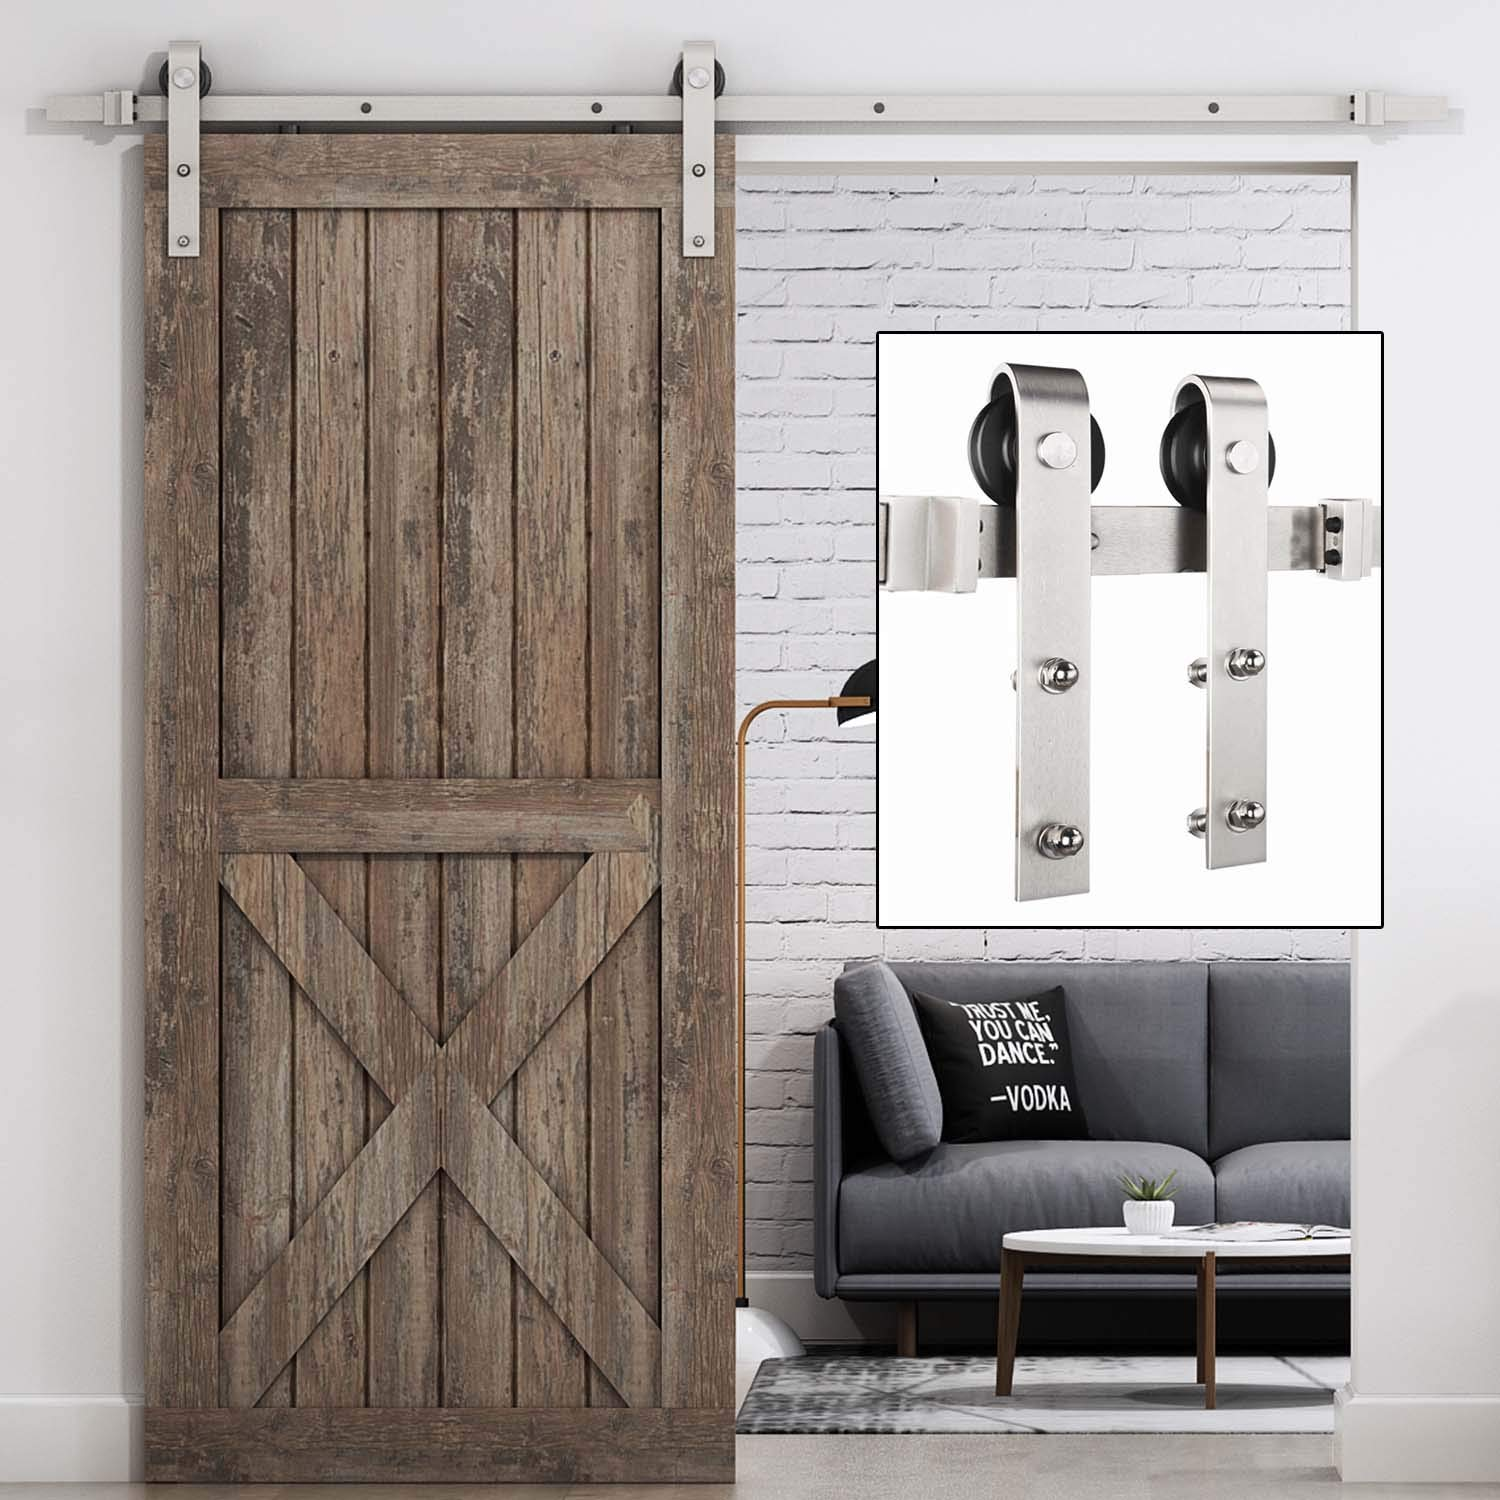 EaseLife 6.6 FT Heavy Duty Brush Nickle Sliding Barn Door Hardware Track Kit - Modern | Sturdy | Slide Smooth Quiet | Easy Install | Fit up to 40'' Wide Door | 6.6FT Track Single Door Kit